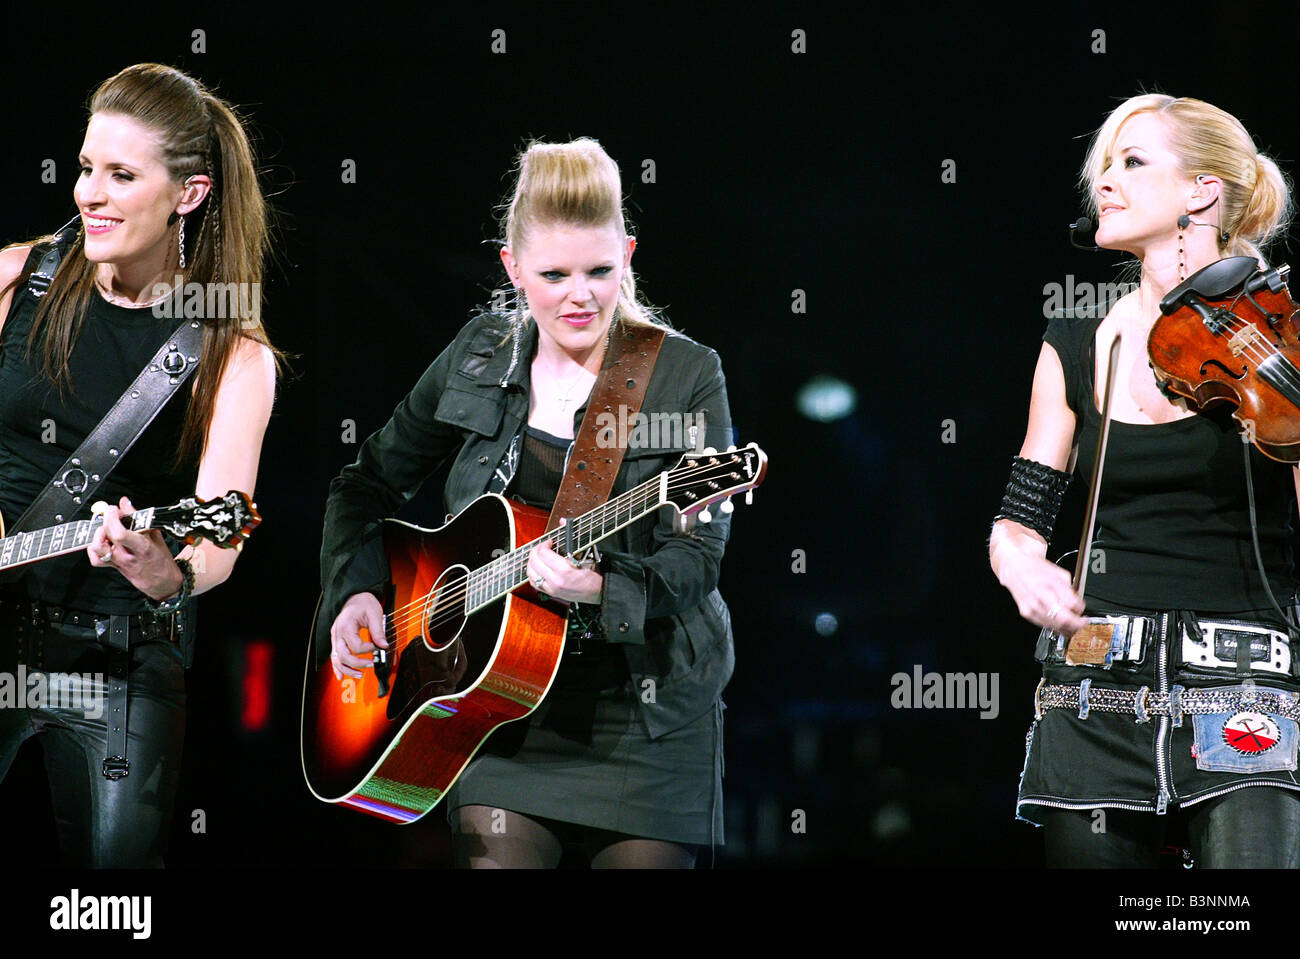 DIXIE CHICKS  US girl Country group in 2003 - Stock Image